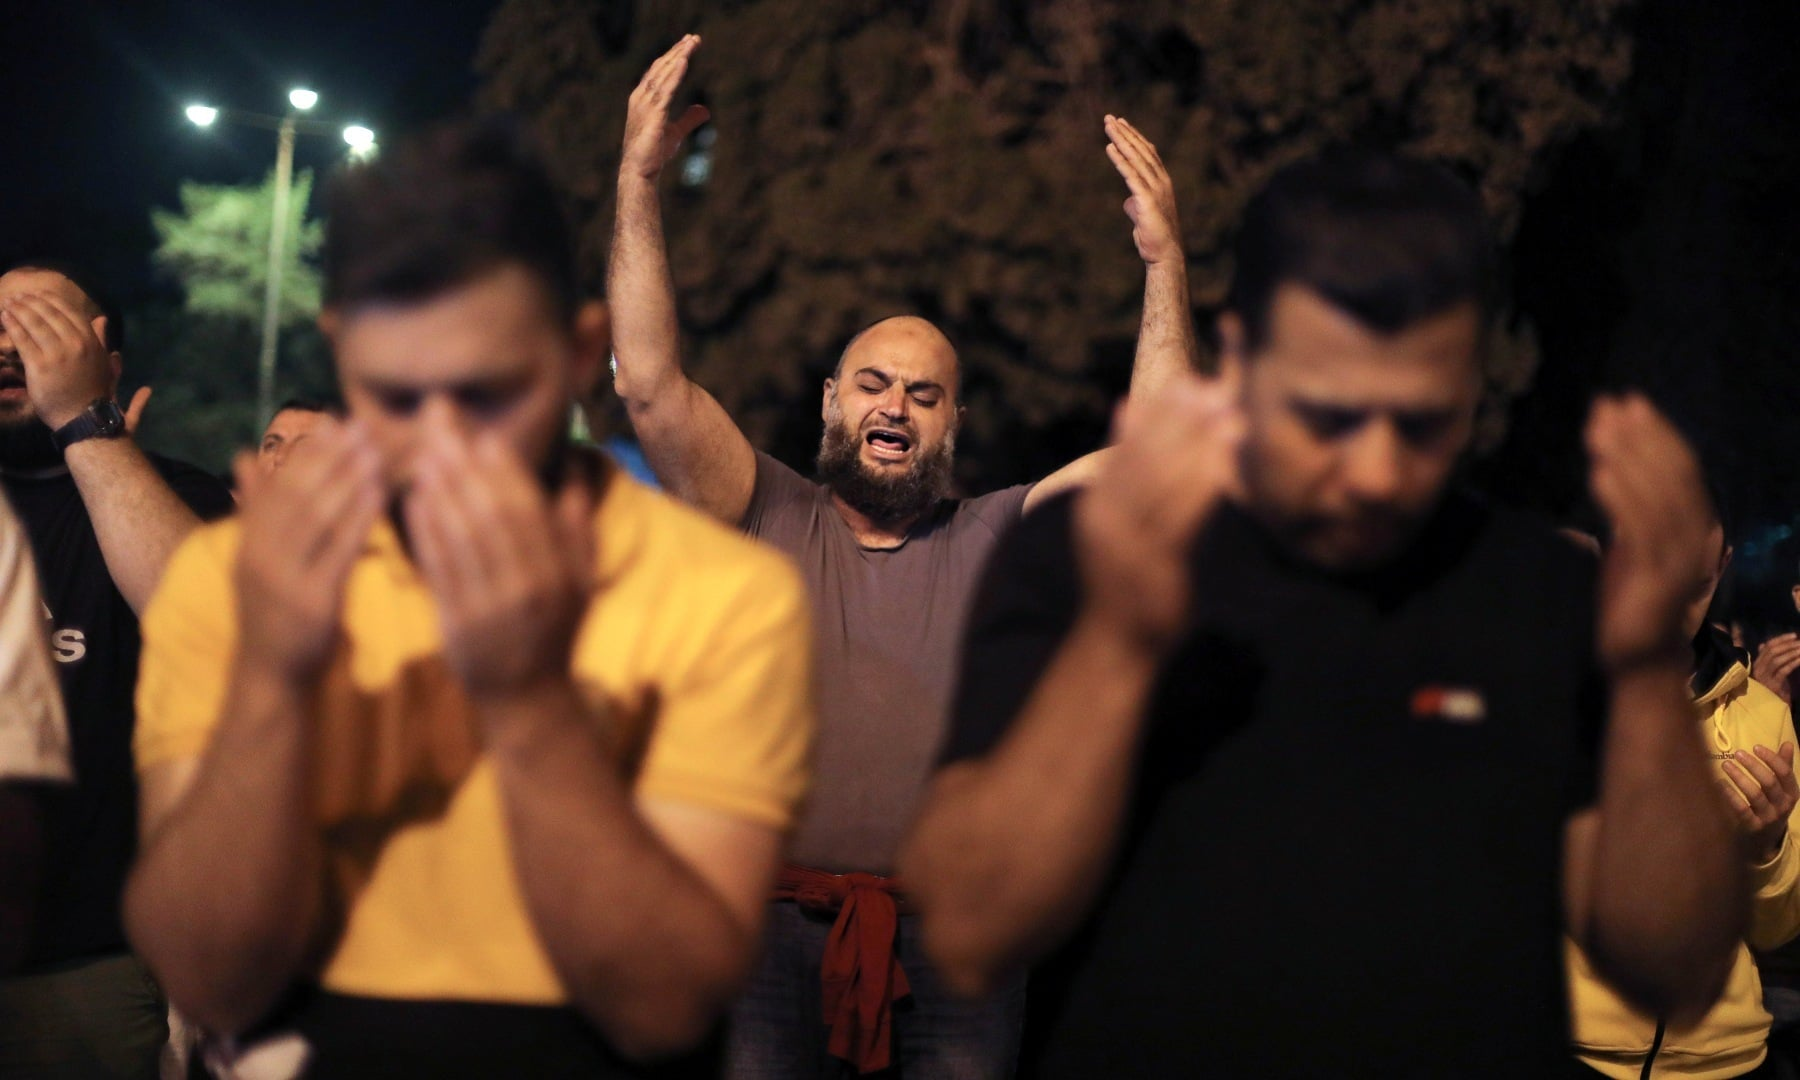 Palestinians pray on Laylat al-Qadr during the holy month of Ramazan, at the compound that houses Al-Aqsa mosque, known to Muslims as Noble Sanctuary and to Jews as Temple Mount, in Jerusalem's Old City, May 8. — Reuters